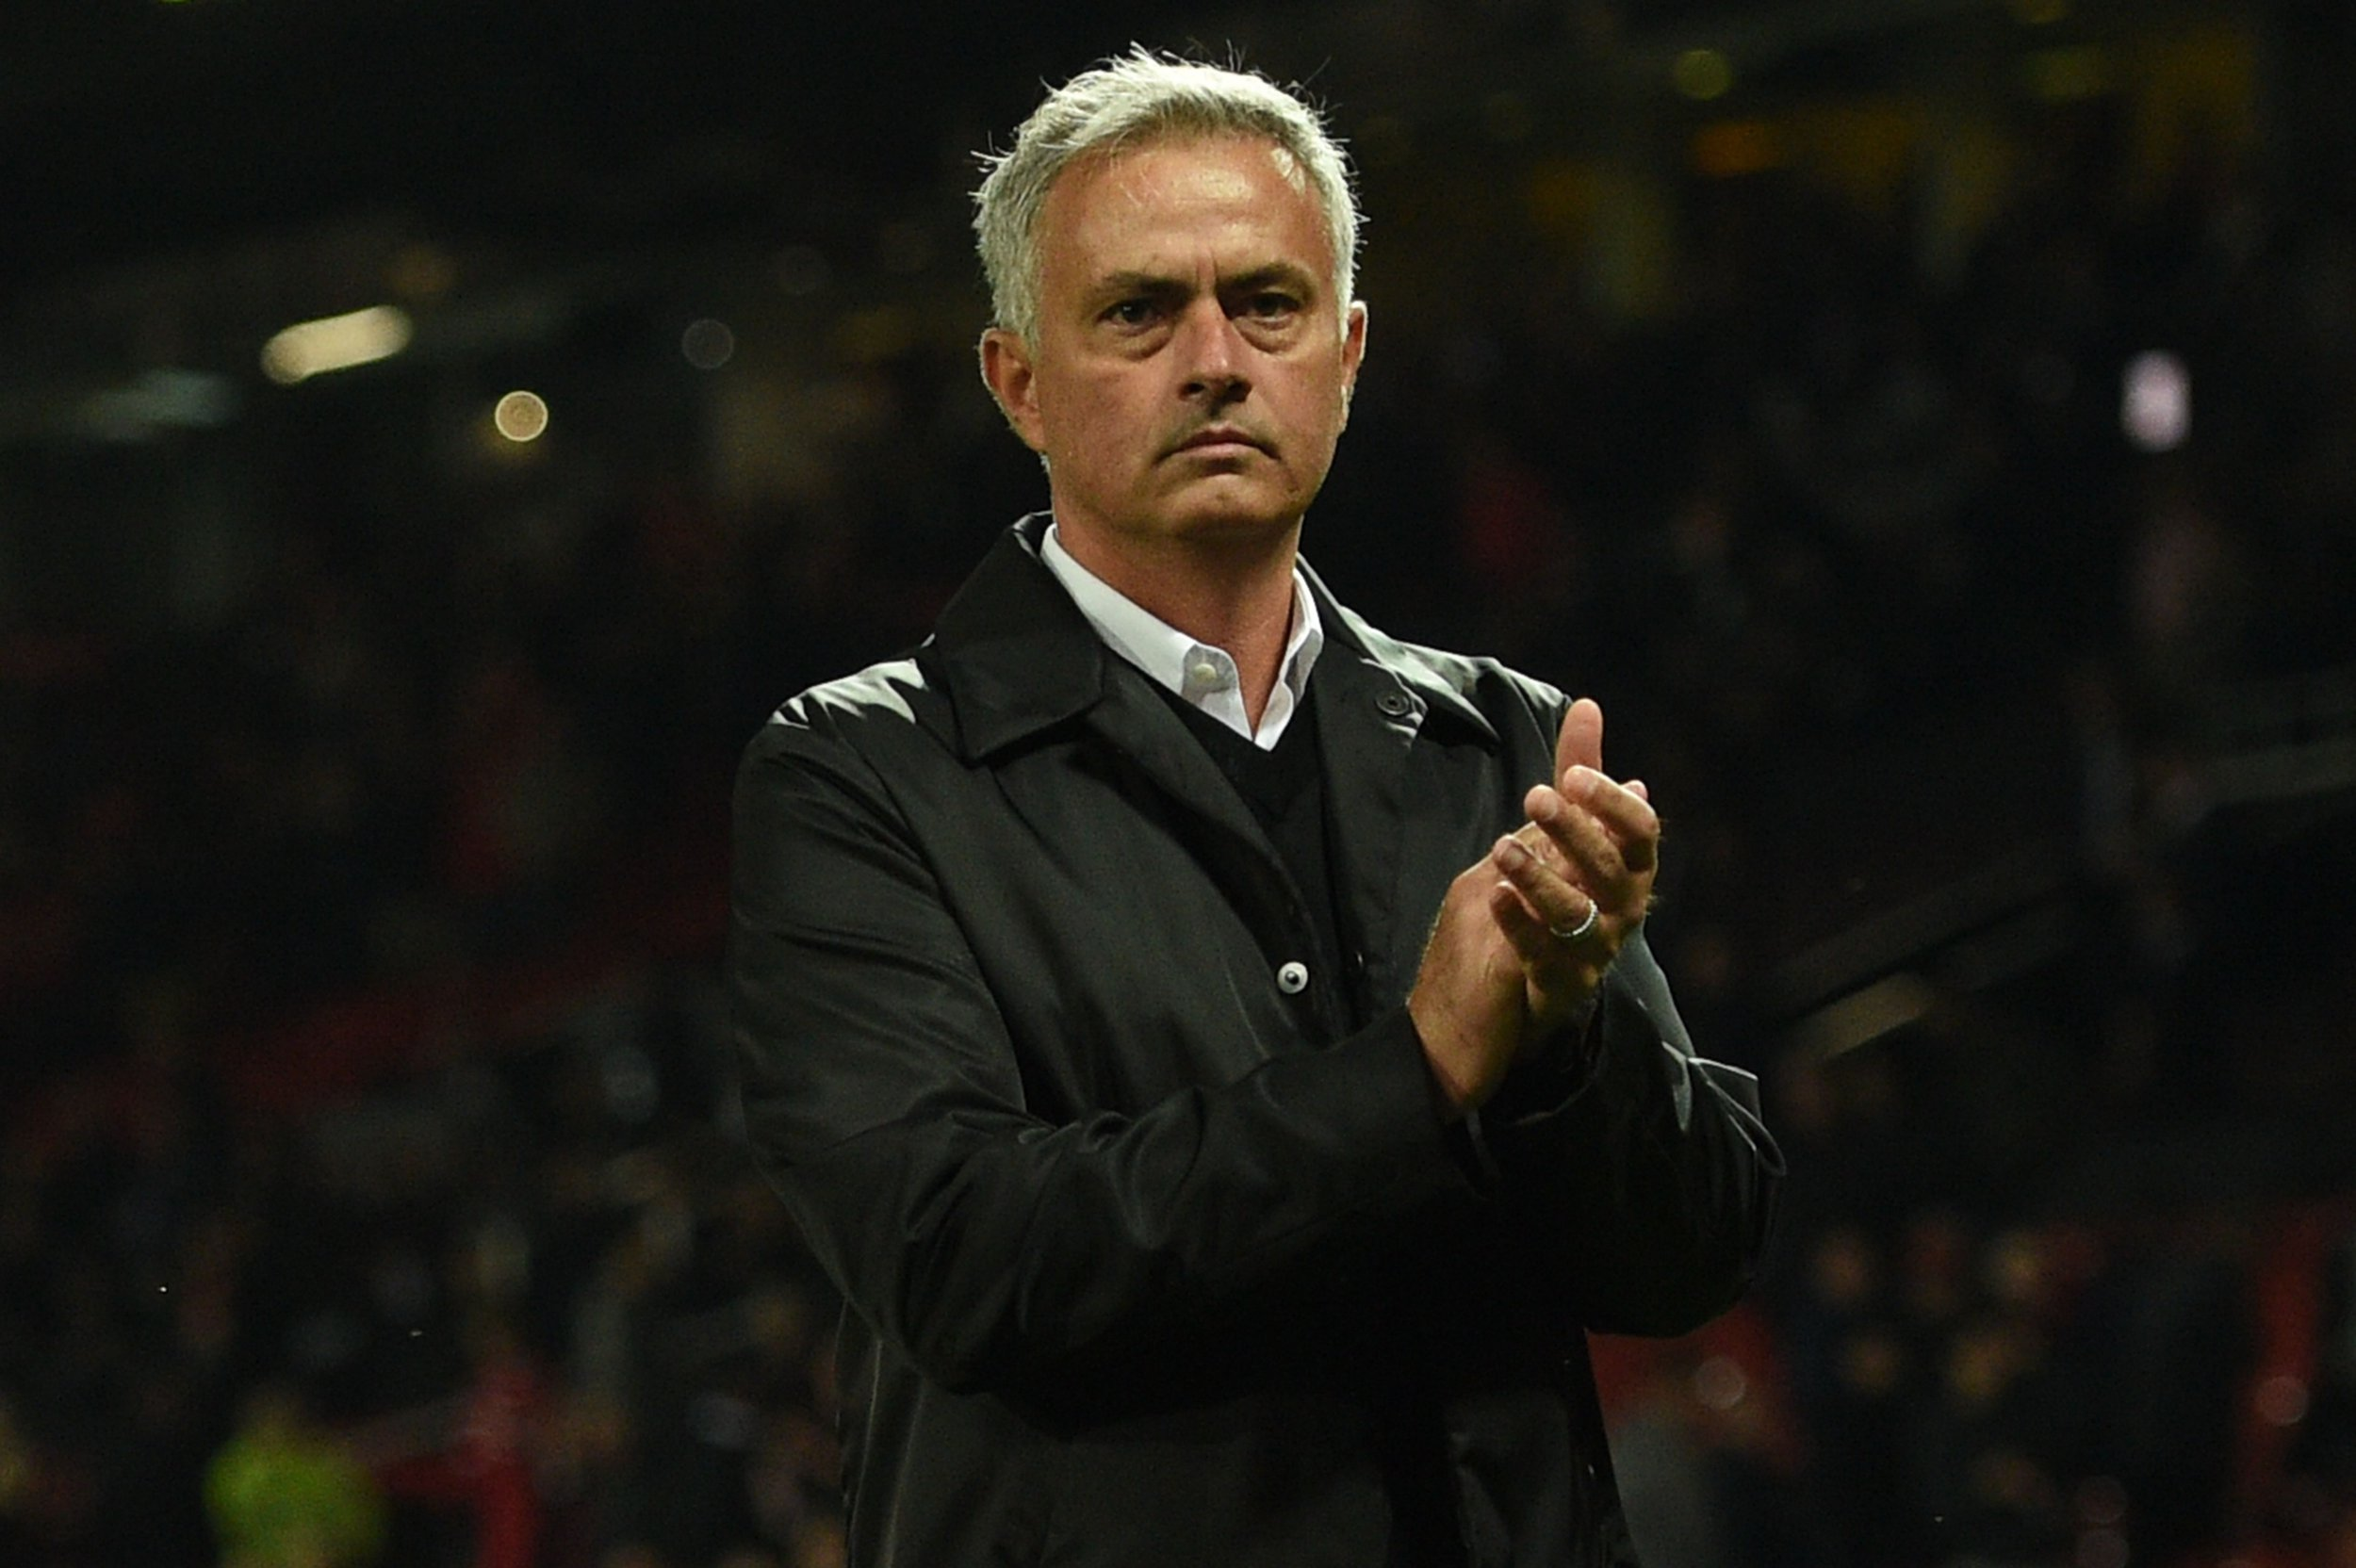 Manchester United's Portuguese manager Jose Mourinho stands on the pitch applauding the homes fans that stayed until the end after the English Premier League football match between Manchester United and Tottenham Hotspur at Old Trafford in Manchester, north west England, on August 27, 2018. (Photo by Oli SCARFF / AFP) / RESTRICTED TO EDITORIAL USE. No use with unauthorized audio, video, data, fixture lists, club/league logos or 'live' services. Online in-match use limited to 120 images. An additional 40 images may be used in extra time. No video emulation. Social media in-match use limited to 120 images. An additional 40 images may be used in extra time. No use in betting publications, games or single club/league/player publications. / OLI SCARFF/AFP/Getty Images